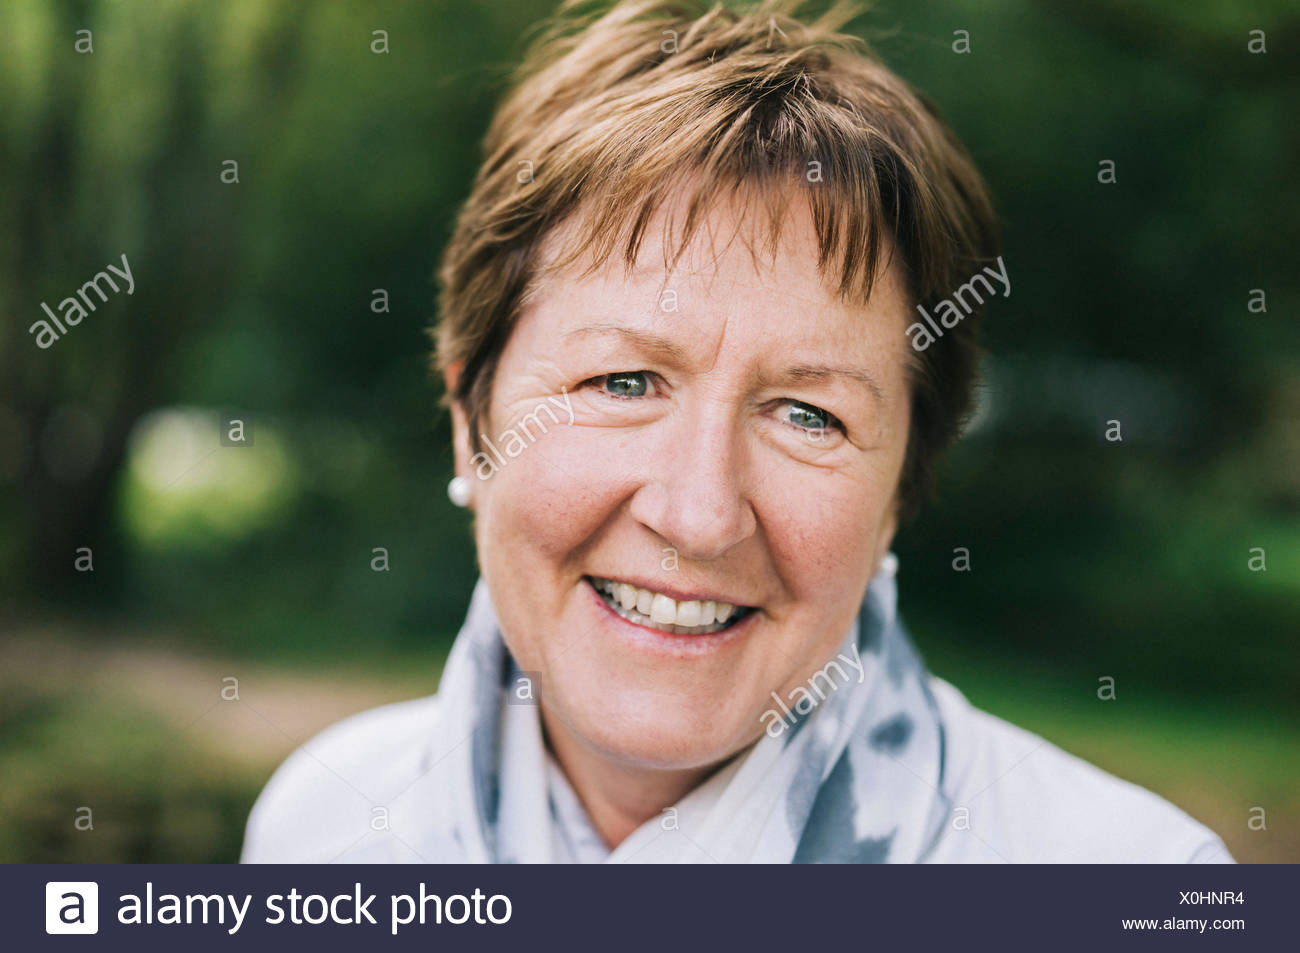 A mature woman with short brown hair smiling. - Stock Image